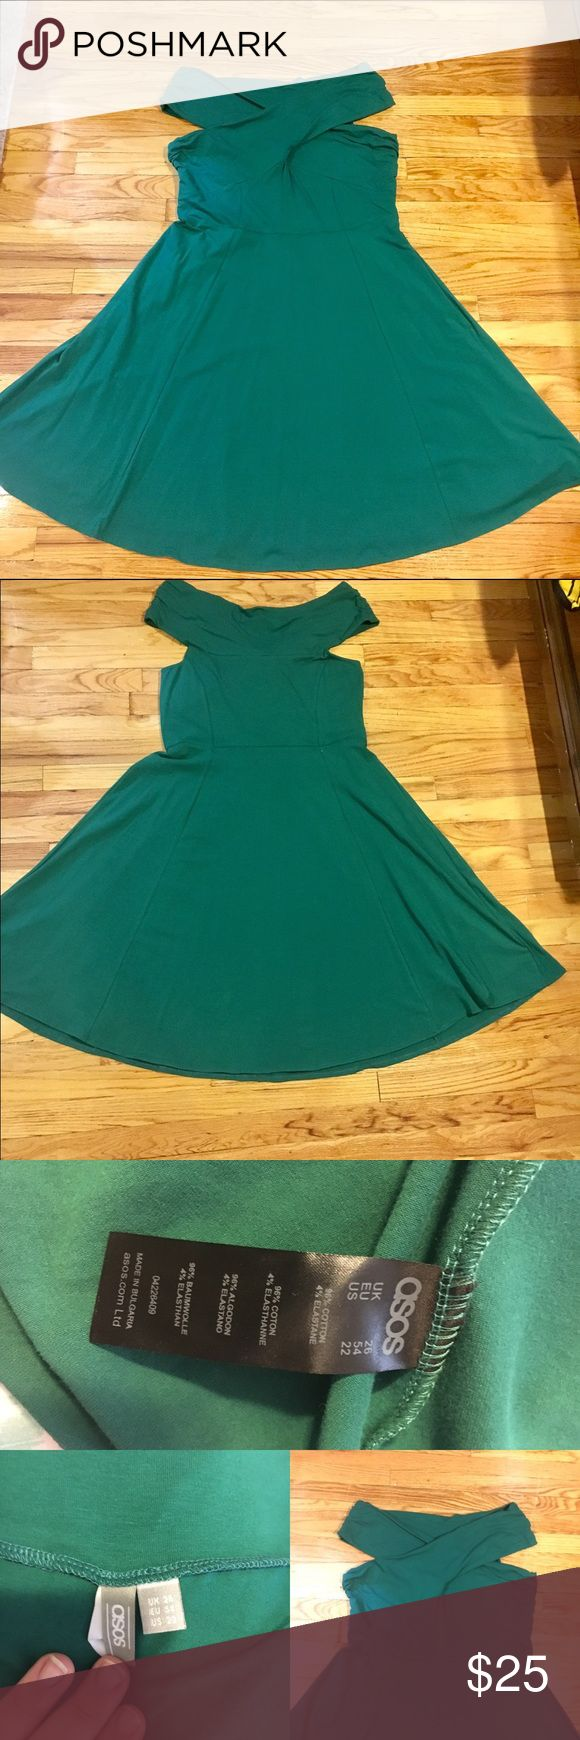 ASOS Curve Green Bardot Midi Dress NEW ASOS cross top Bardot dress in green. Shoulders are adjustable and create beautiful twist on the front of dress. Skirt is in the skater style and swings from body without adding bulk to the dress. ⭐️Bundle 3 for 15% off ✔️⭐️Fast Shipper 🏃🏻♀️⭐️Ask me questions ⁉️ ASOS Curve Dresses Midi